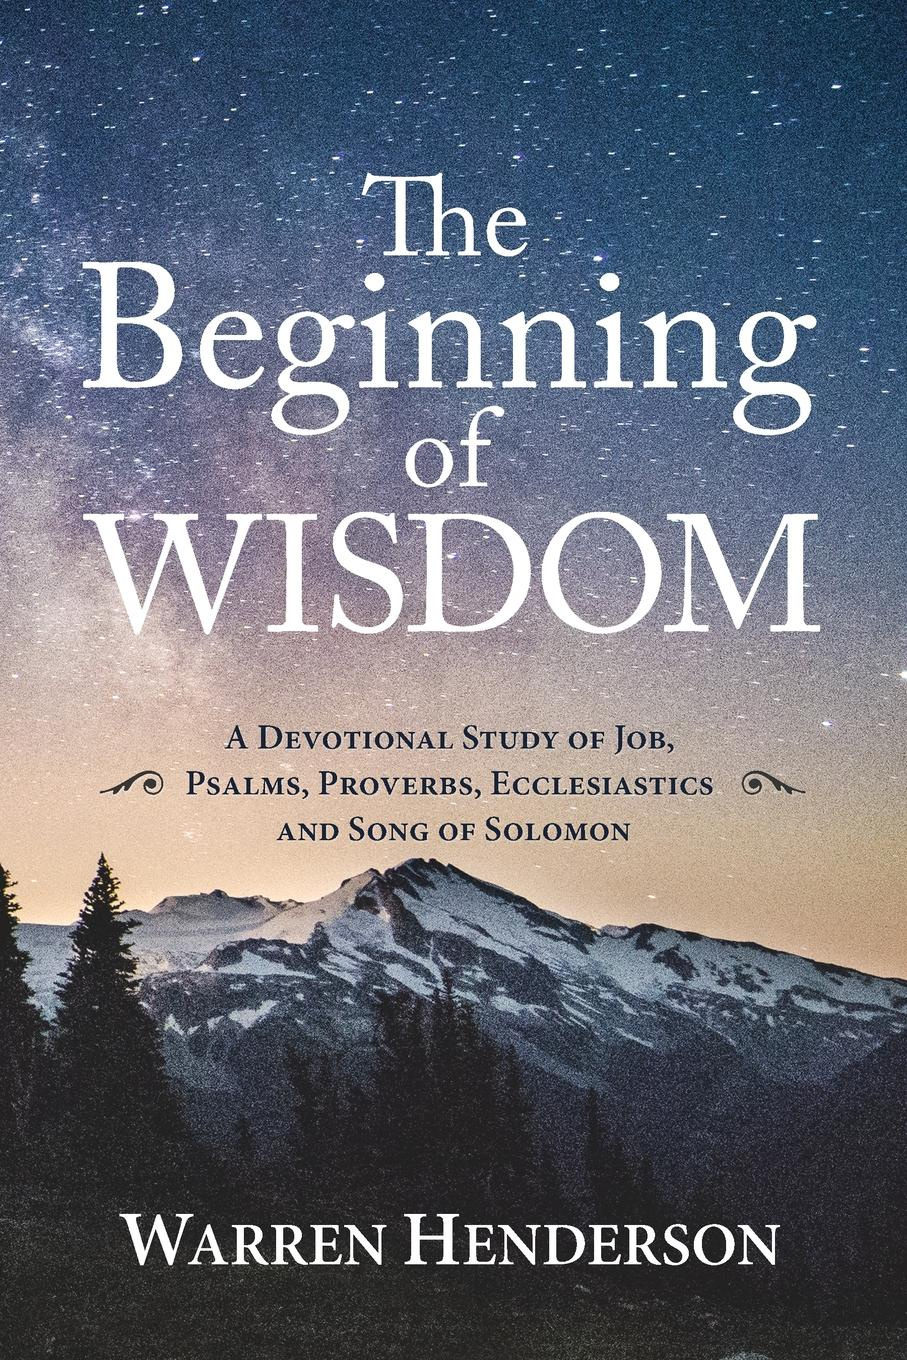 Warren A Henderson The Beginning of Wisdom - A Devotional Study of Job, Psalms, Proverbs, Ecclesiastes, and Song of Solomon john wenger the psalms of david and the proverbs of solomon in bengali